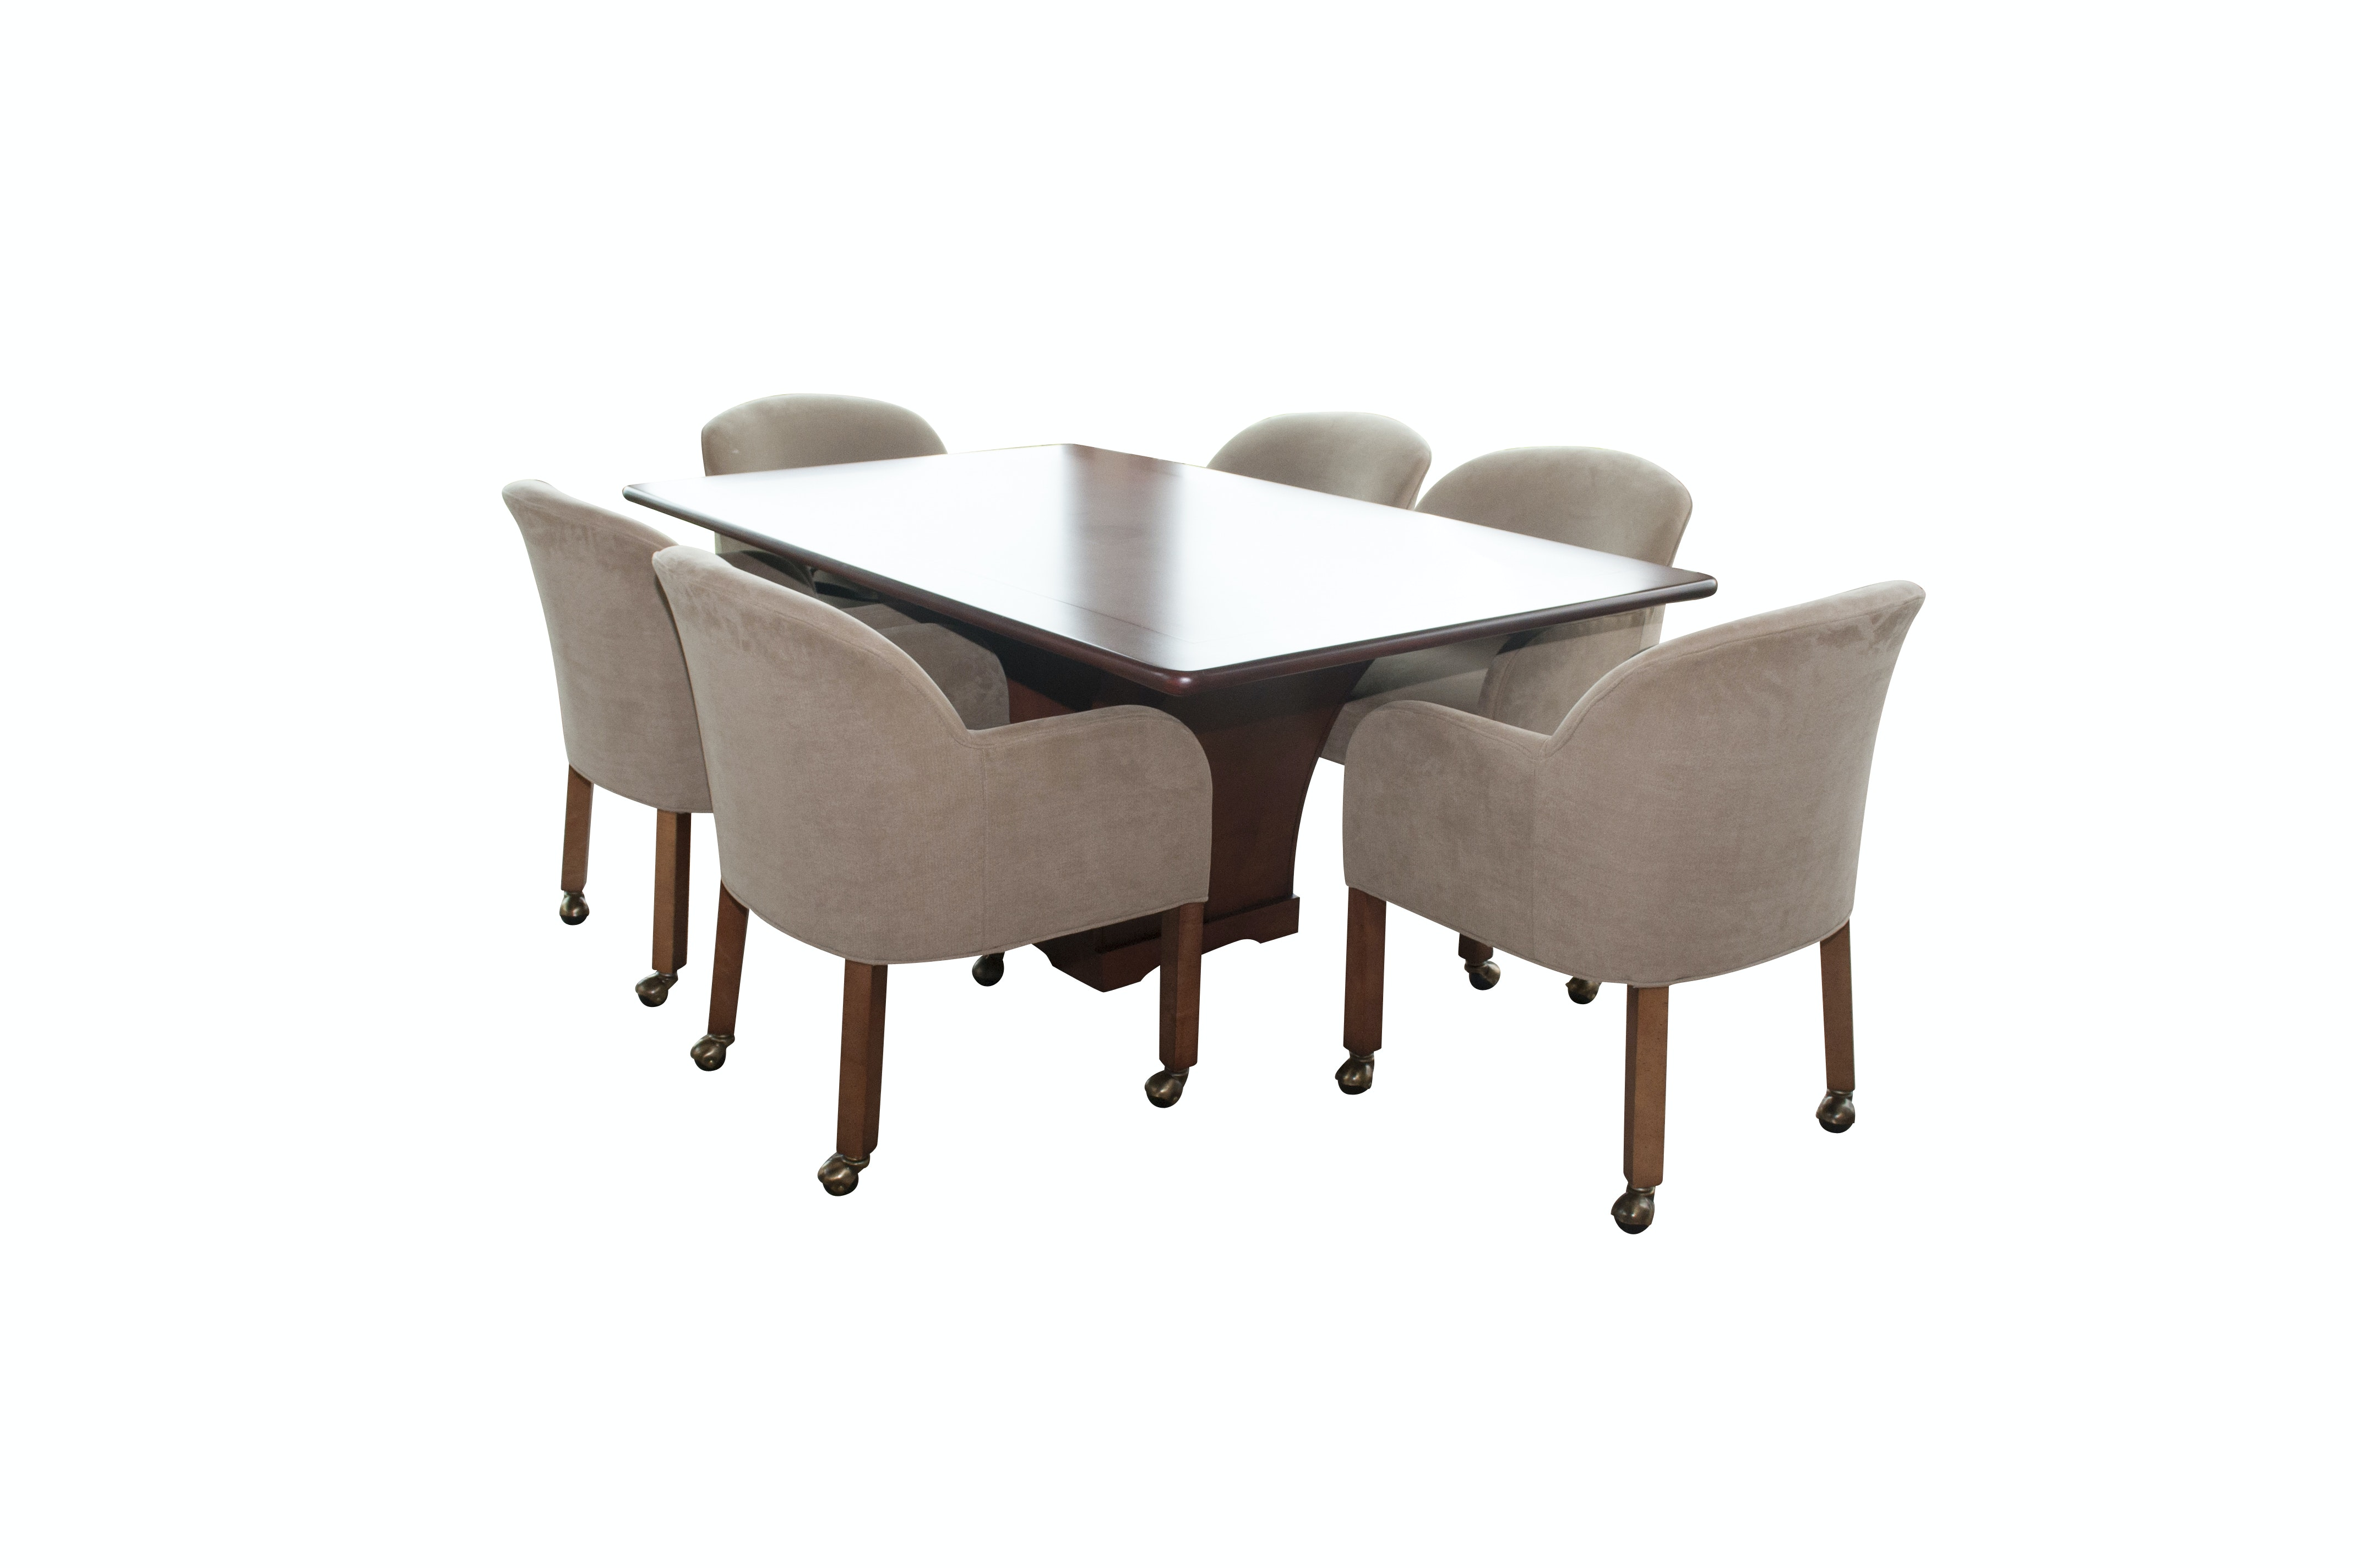 Modern Dining Table with Six Upholstered Chairs